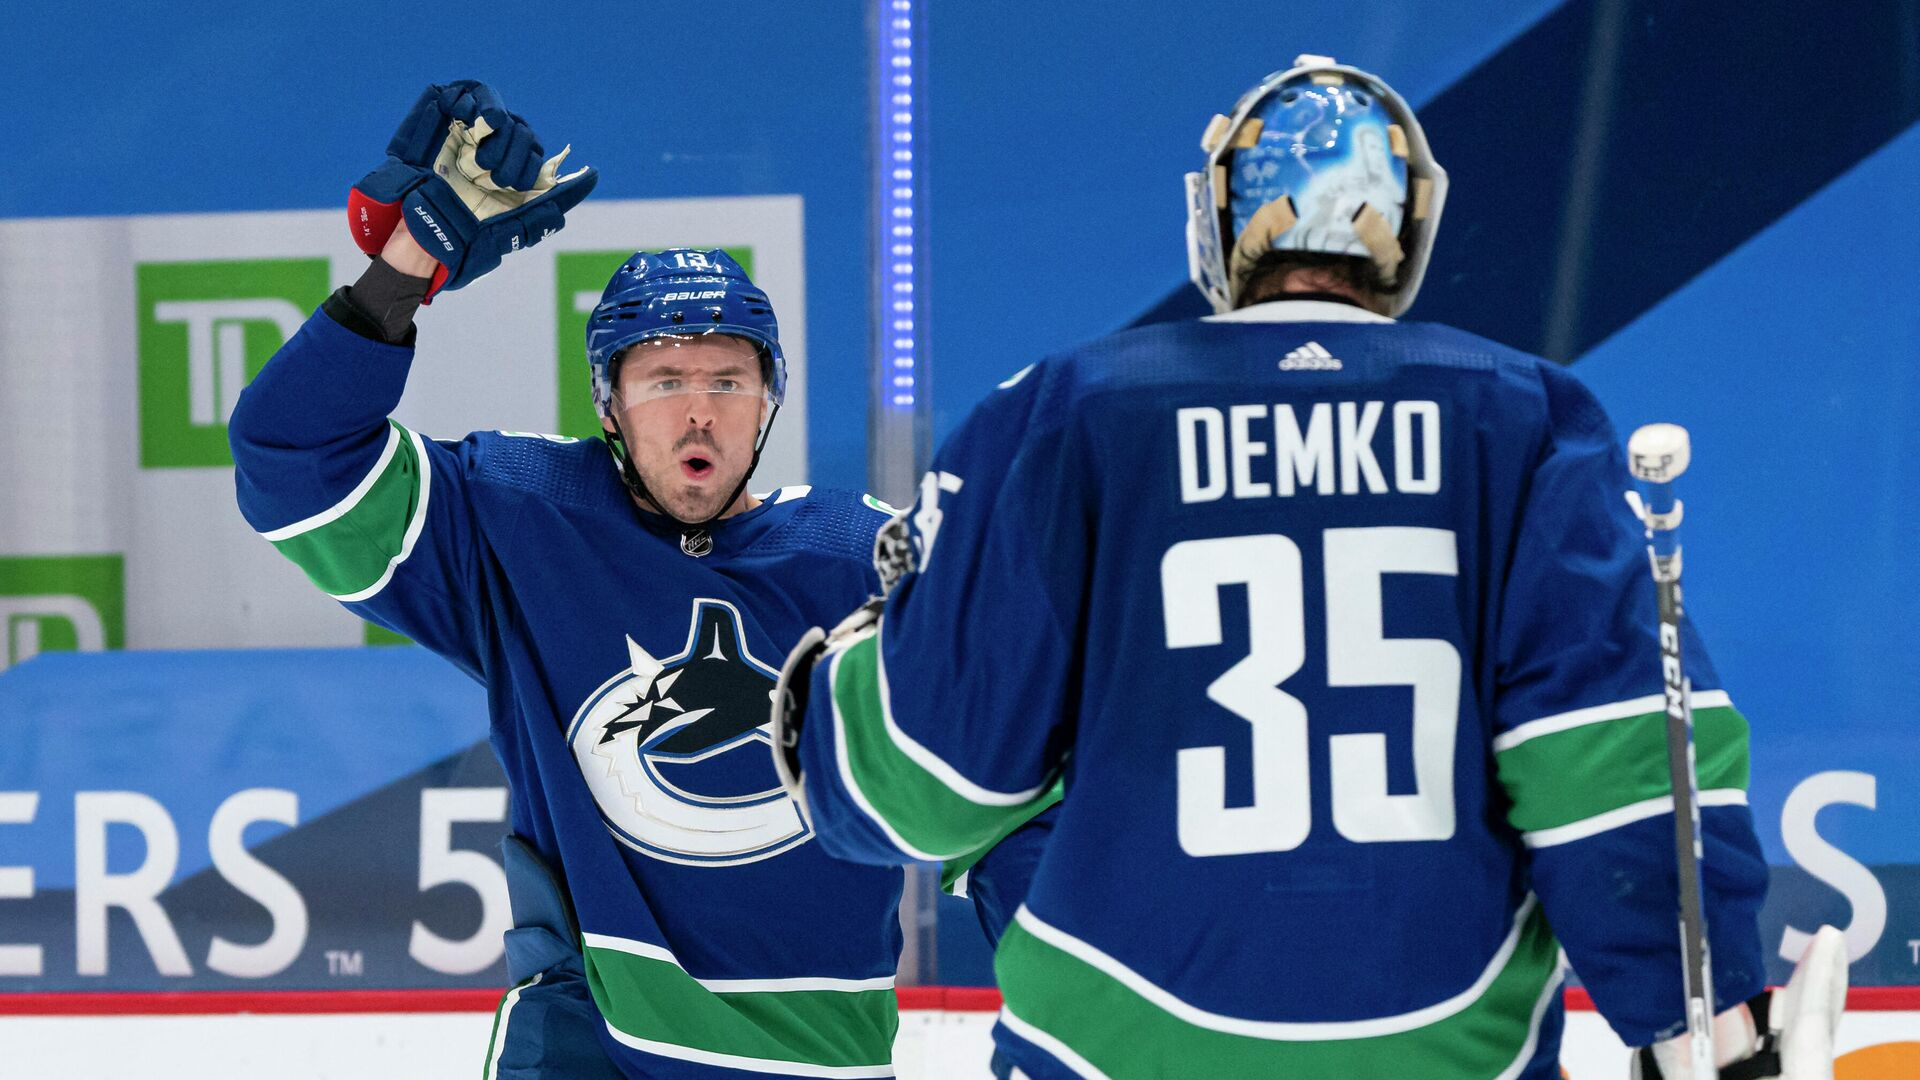 VANCOUVER, BC - MARCH 08: Jayce Hawryluk #13 of the Vancouver Canucks congratulates teammate Thatcher Demko #35 after defeating the Montreal Canadiens 2-1 in a shootout in NHL hockey action at Rogers Arena on March 8, 2021 in Vancouver, Canada.   Rich Lam/Getty Images/AFP (Photo by Rich Lam / GETTY IMAGES NORTH AMERICA / Getty Images via AFP) - РИА Новости, 1920, 09.03.2021